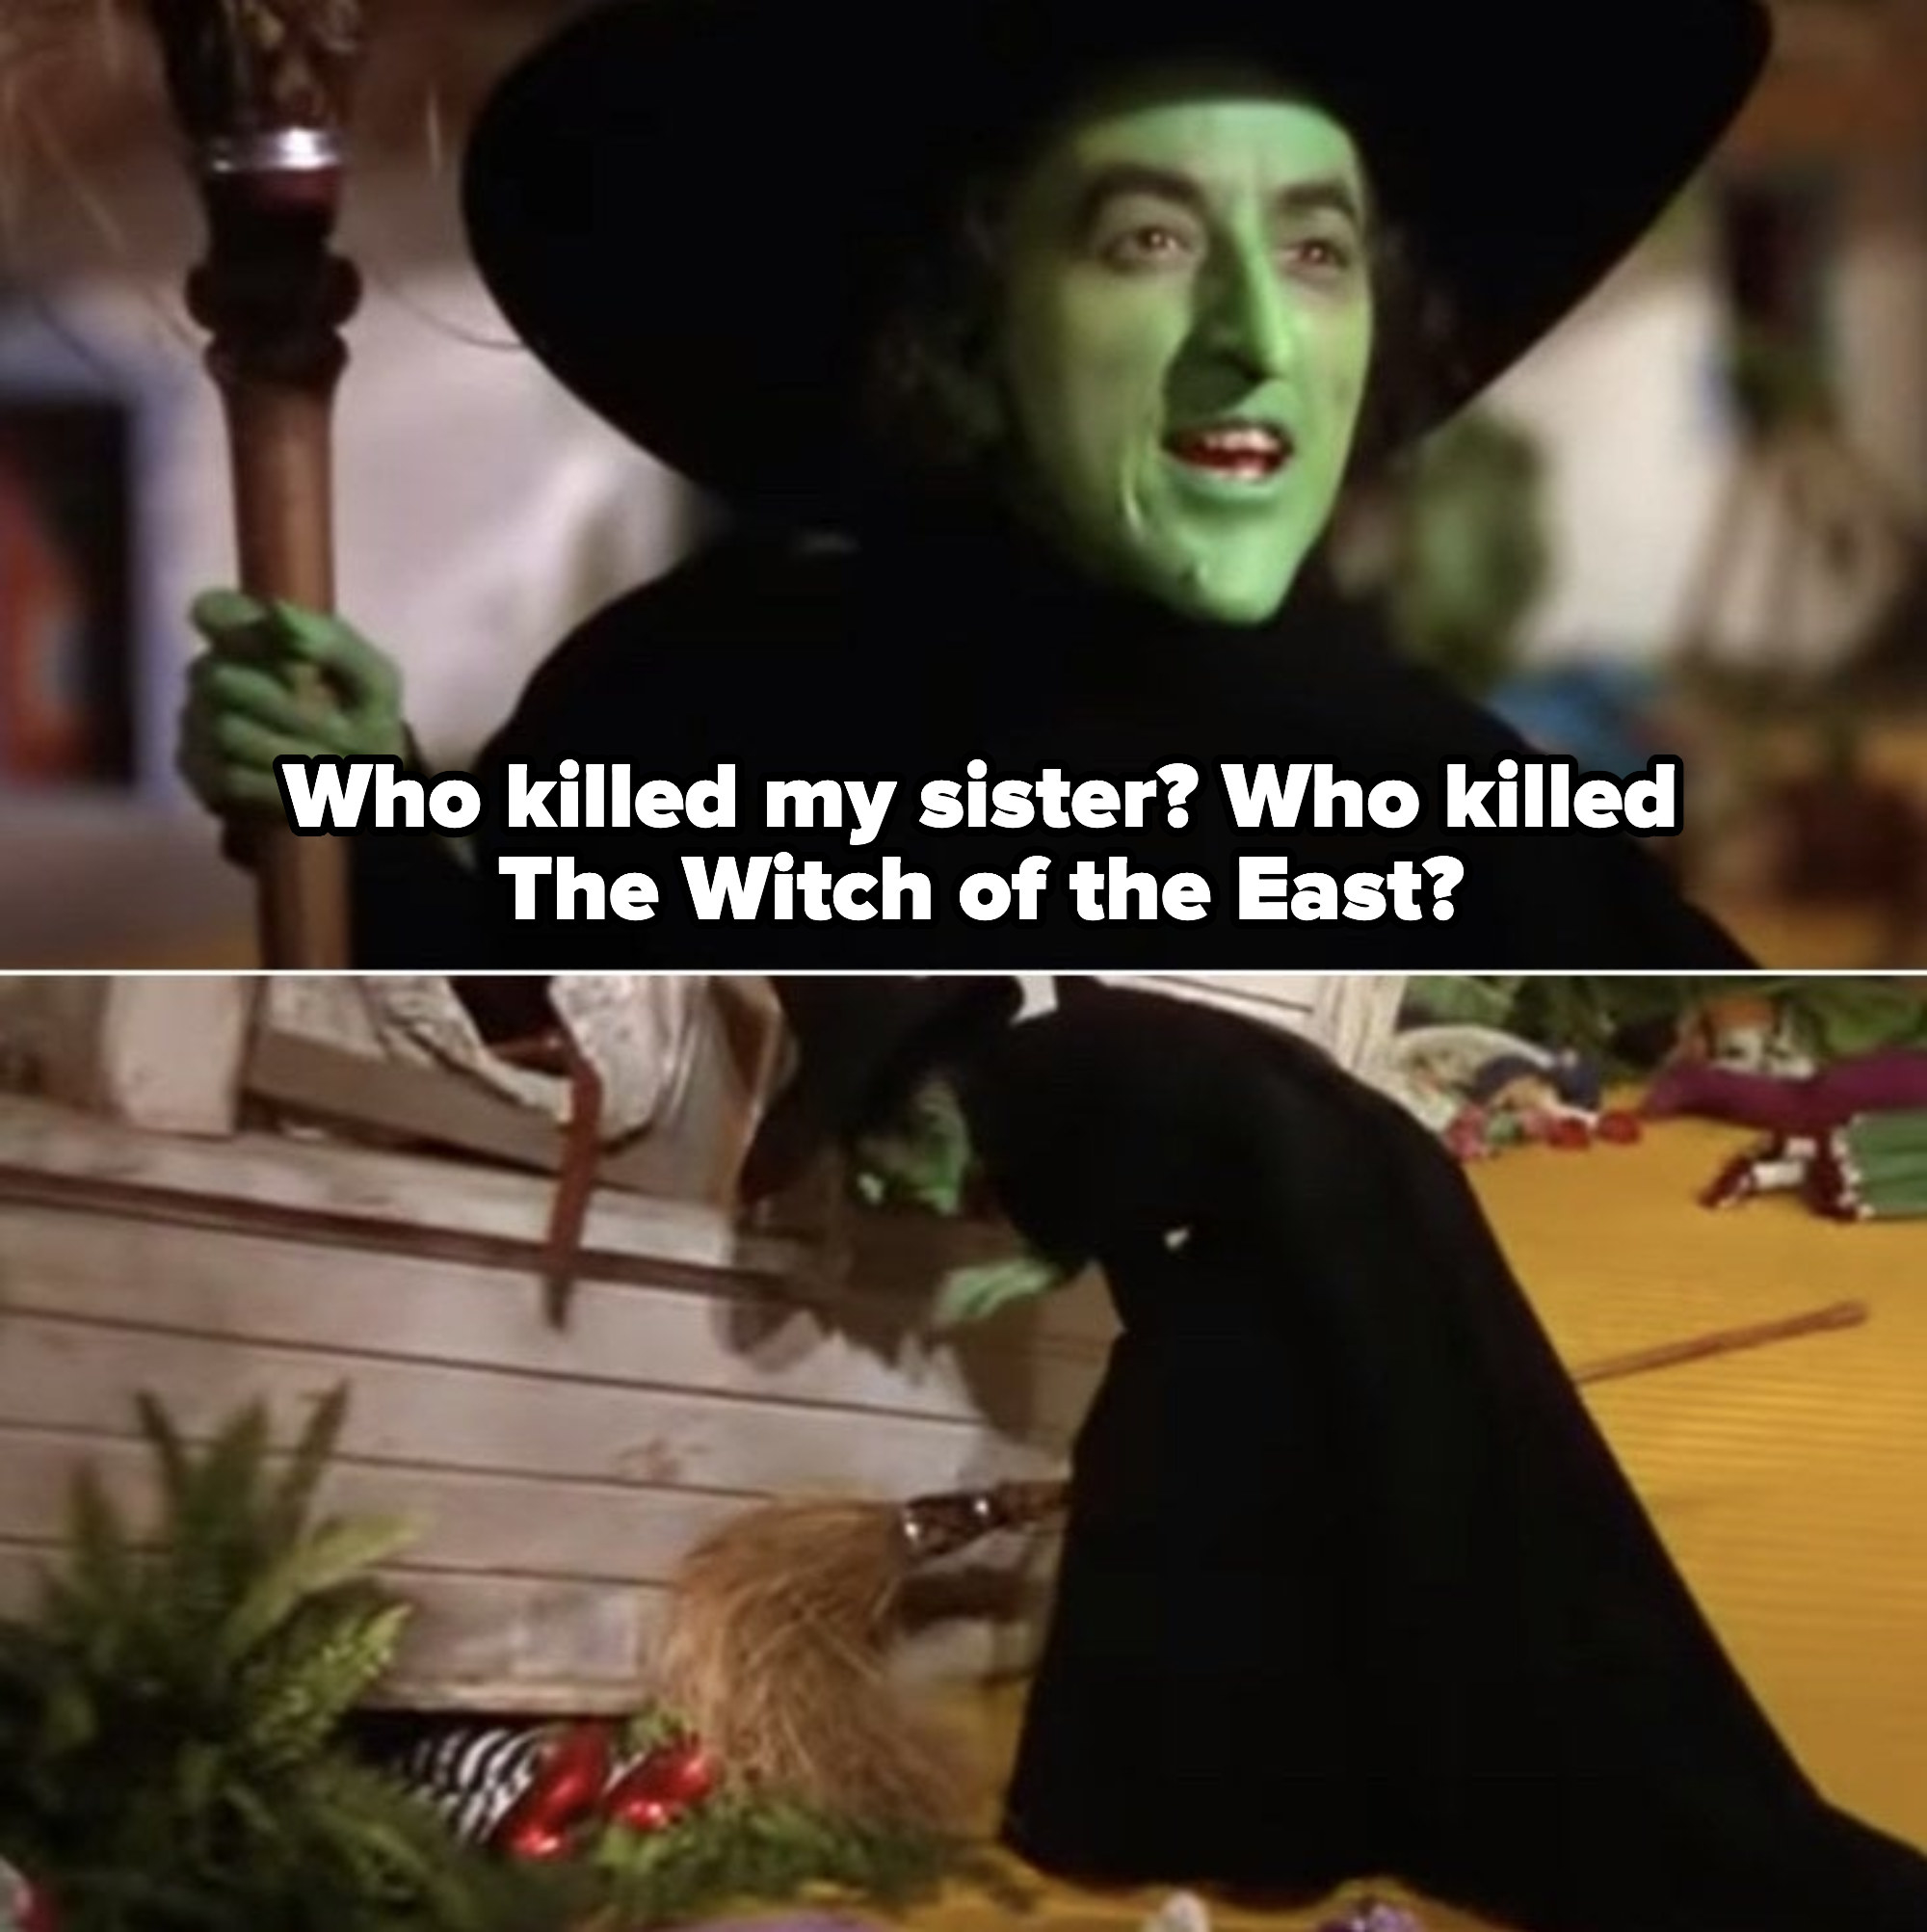 The Wicked Witch of the West angrily asking Dorothy who killed her sister; Wicked Witch of the West going to the house, looking at her dead sister's legs wearing the ruby slippers trapped underneath the house